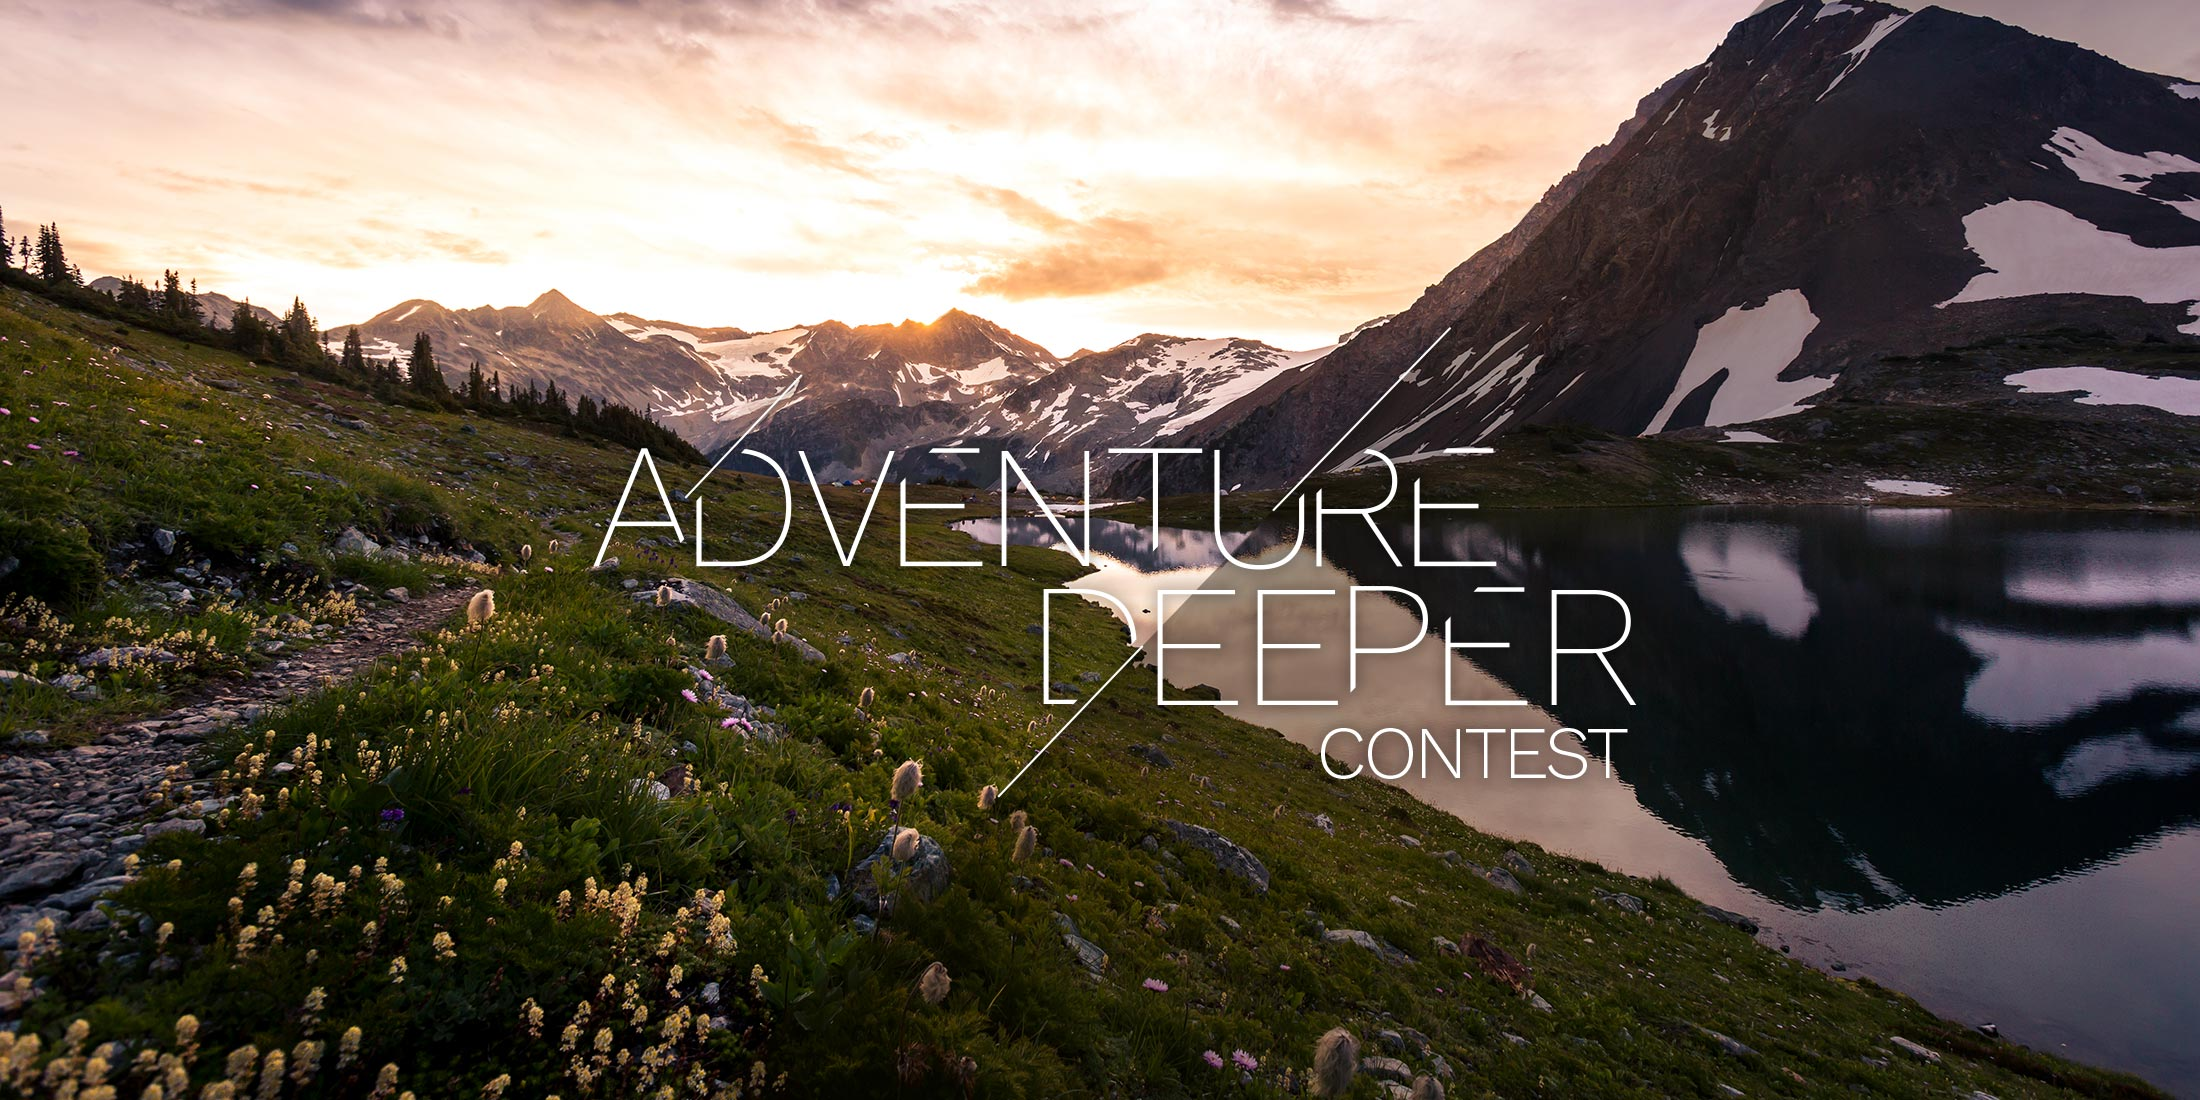 Adventure Differently in Whistler Summer Contest